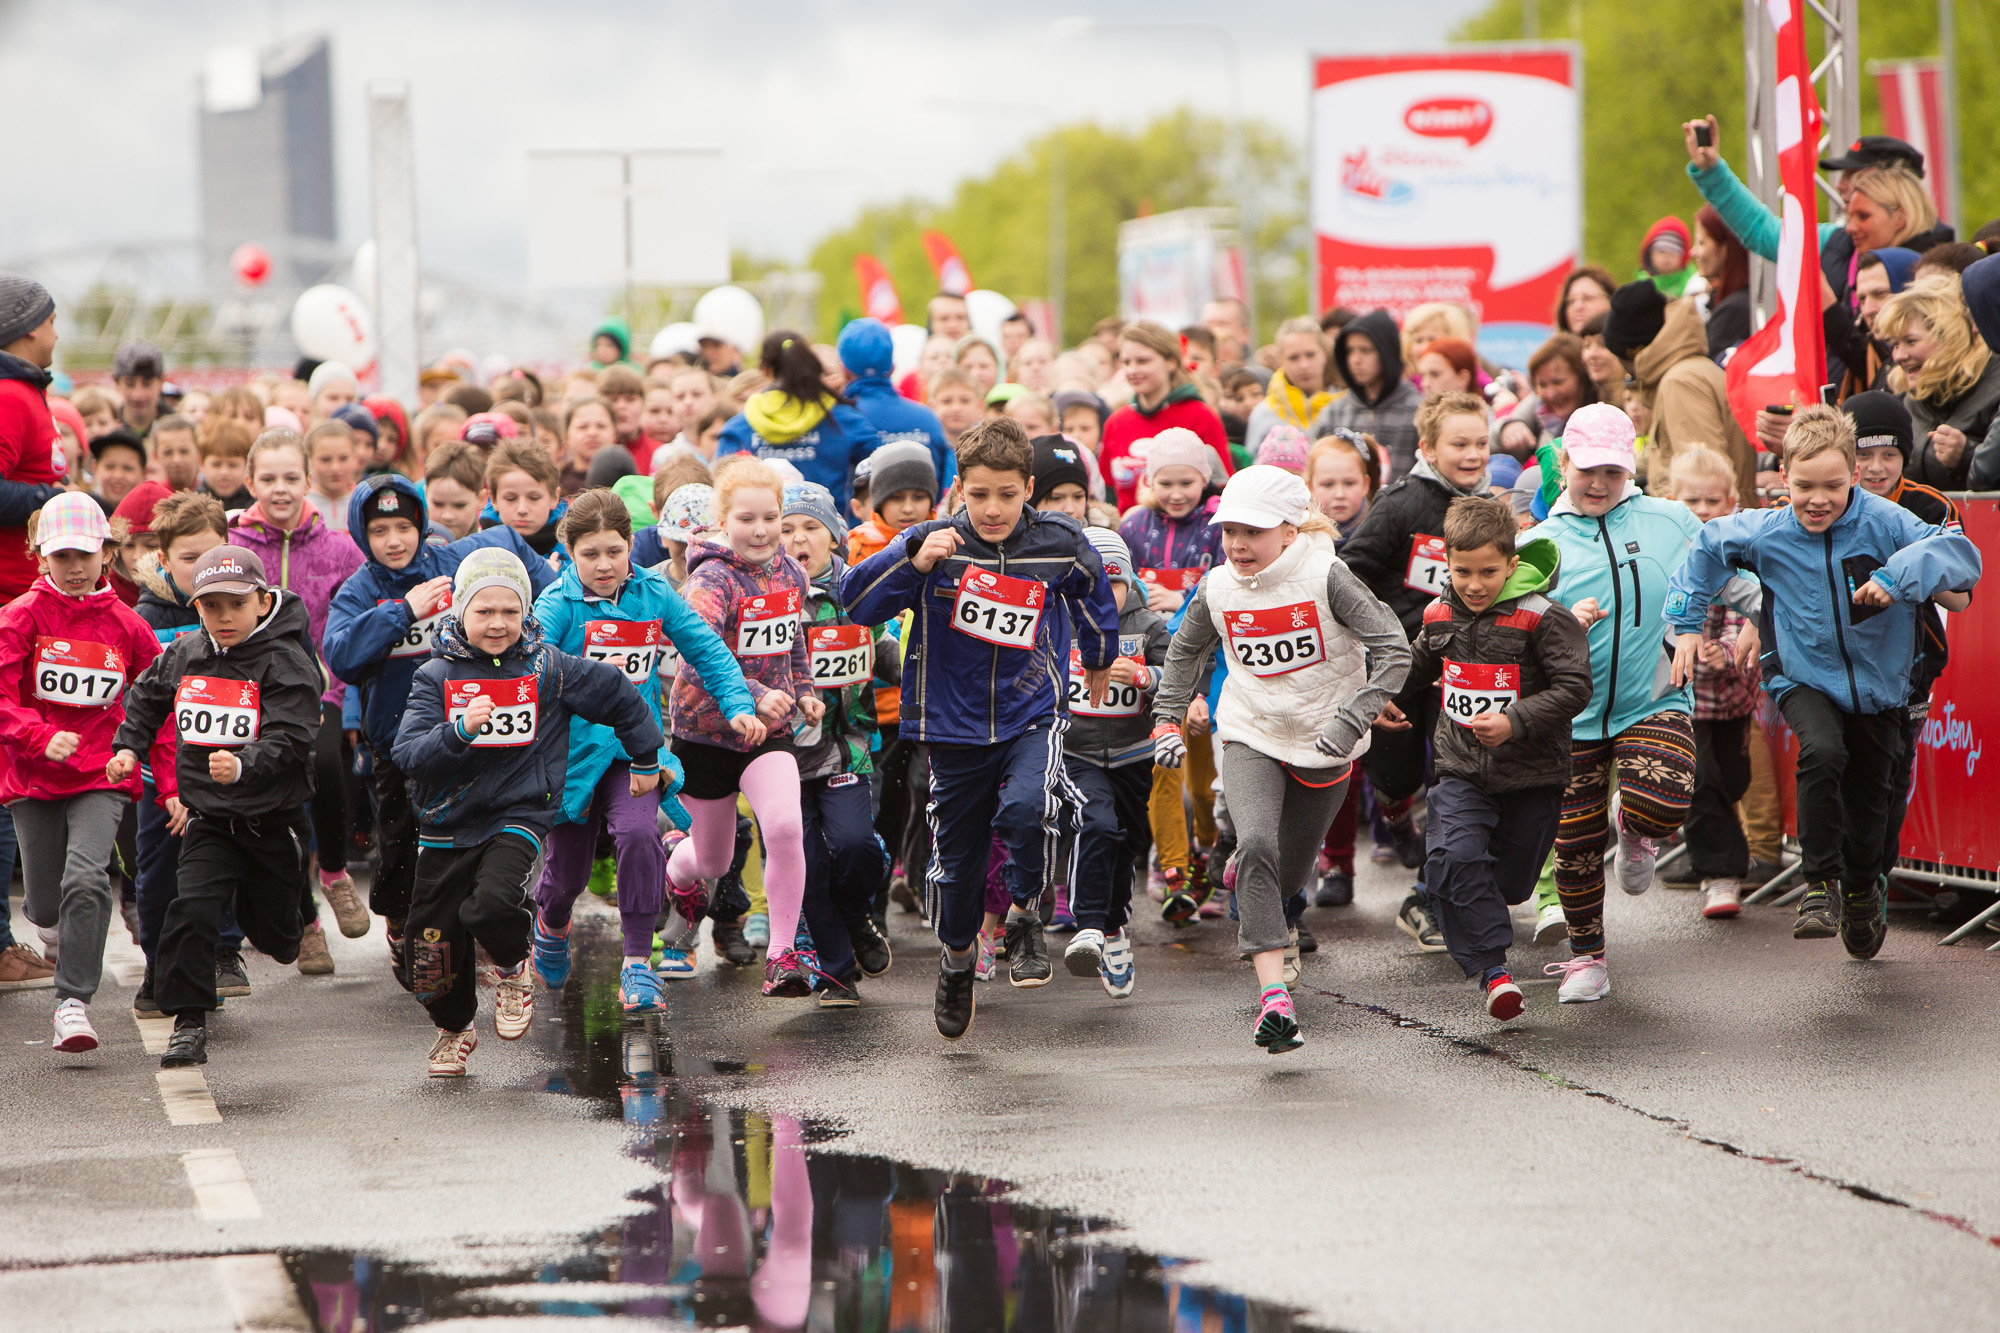 Rimi Children's Marathon – the best public relations event of 2015